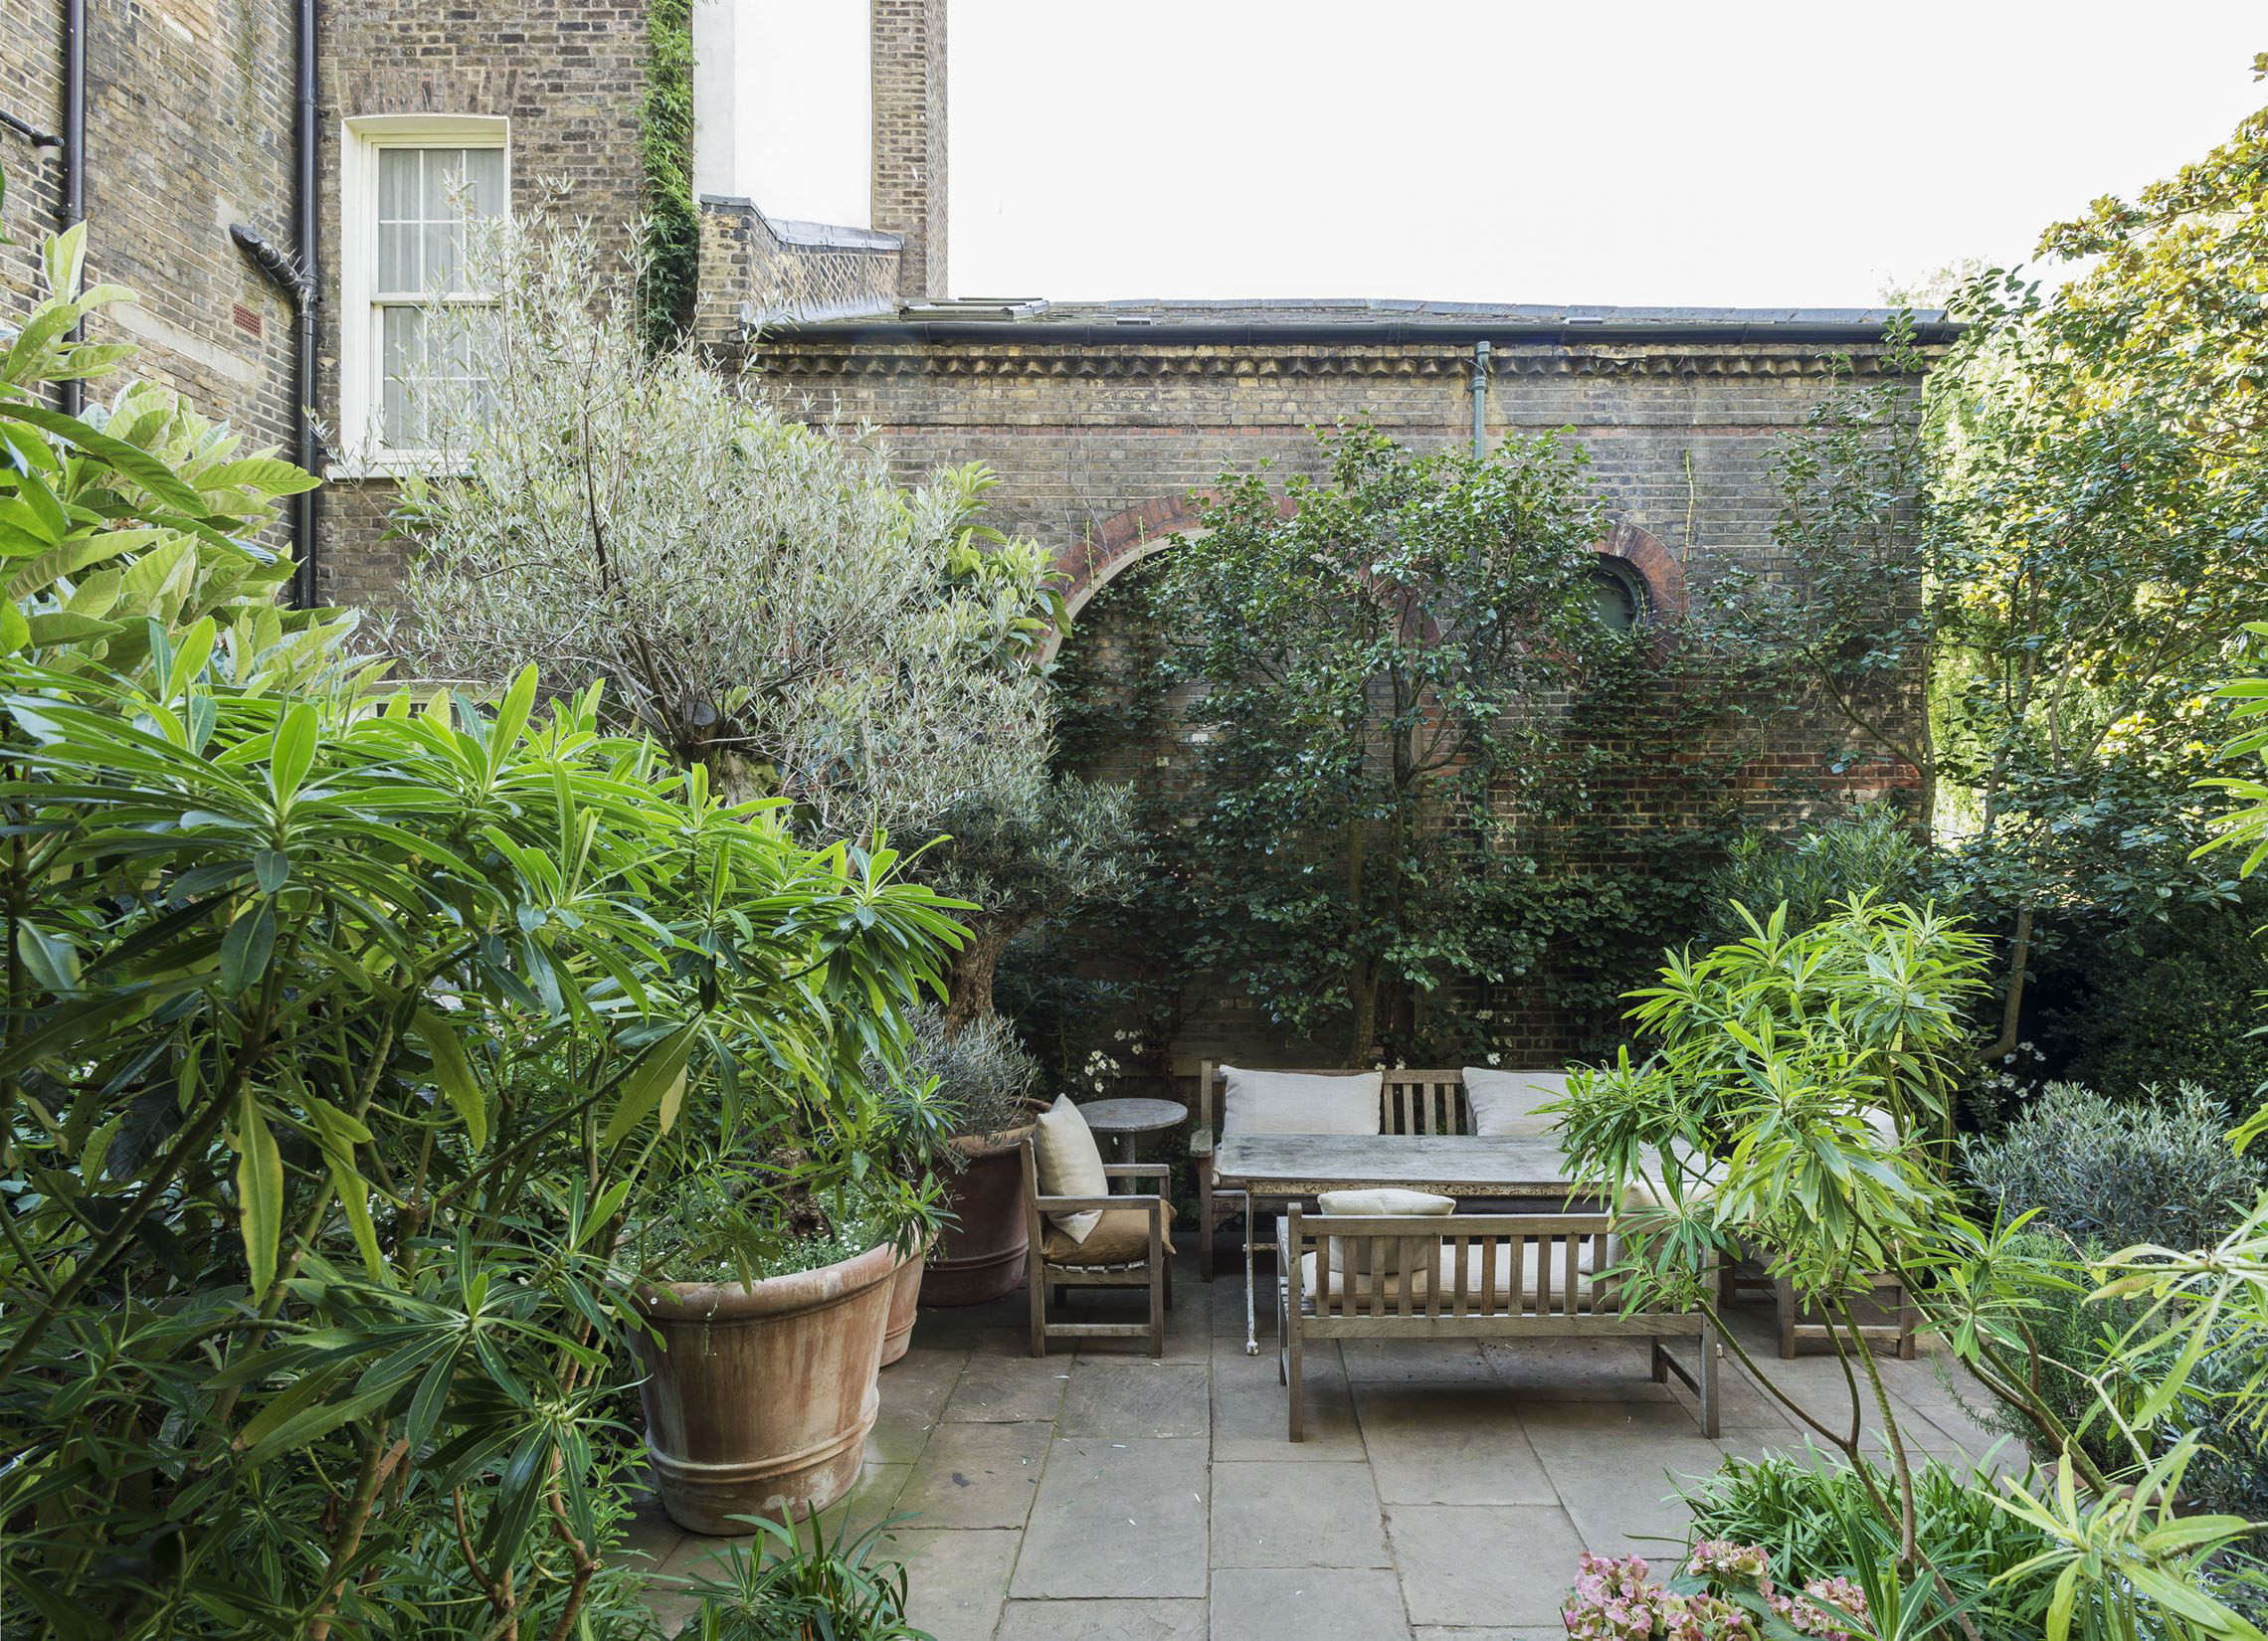 In The Past Decade London Gardeners Have Radically Transformed The Way They  Use Their Rooftops, Which In The Past Were Largely Ignored Spaces.